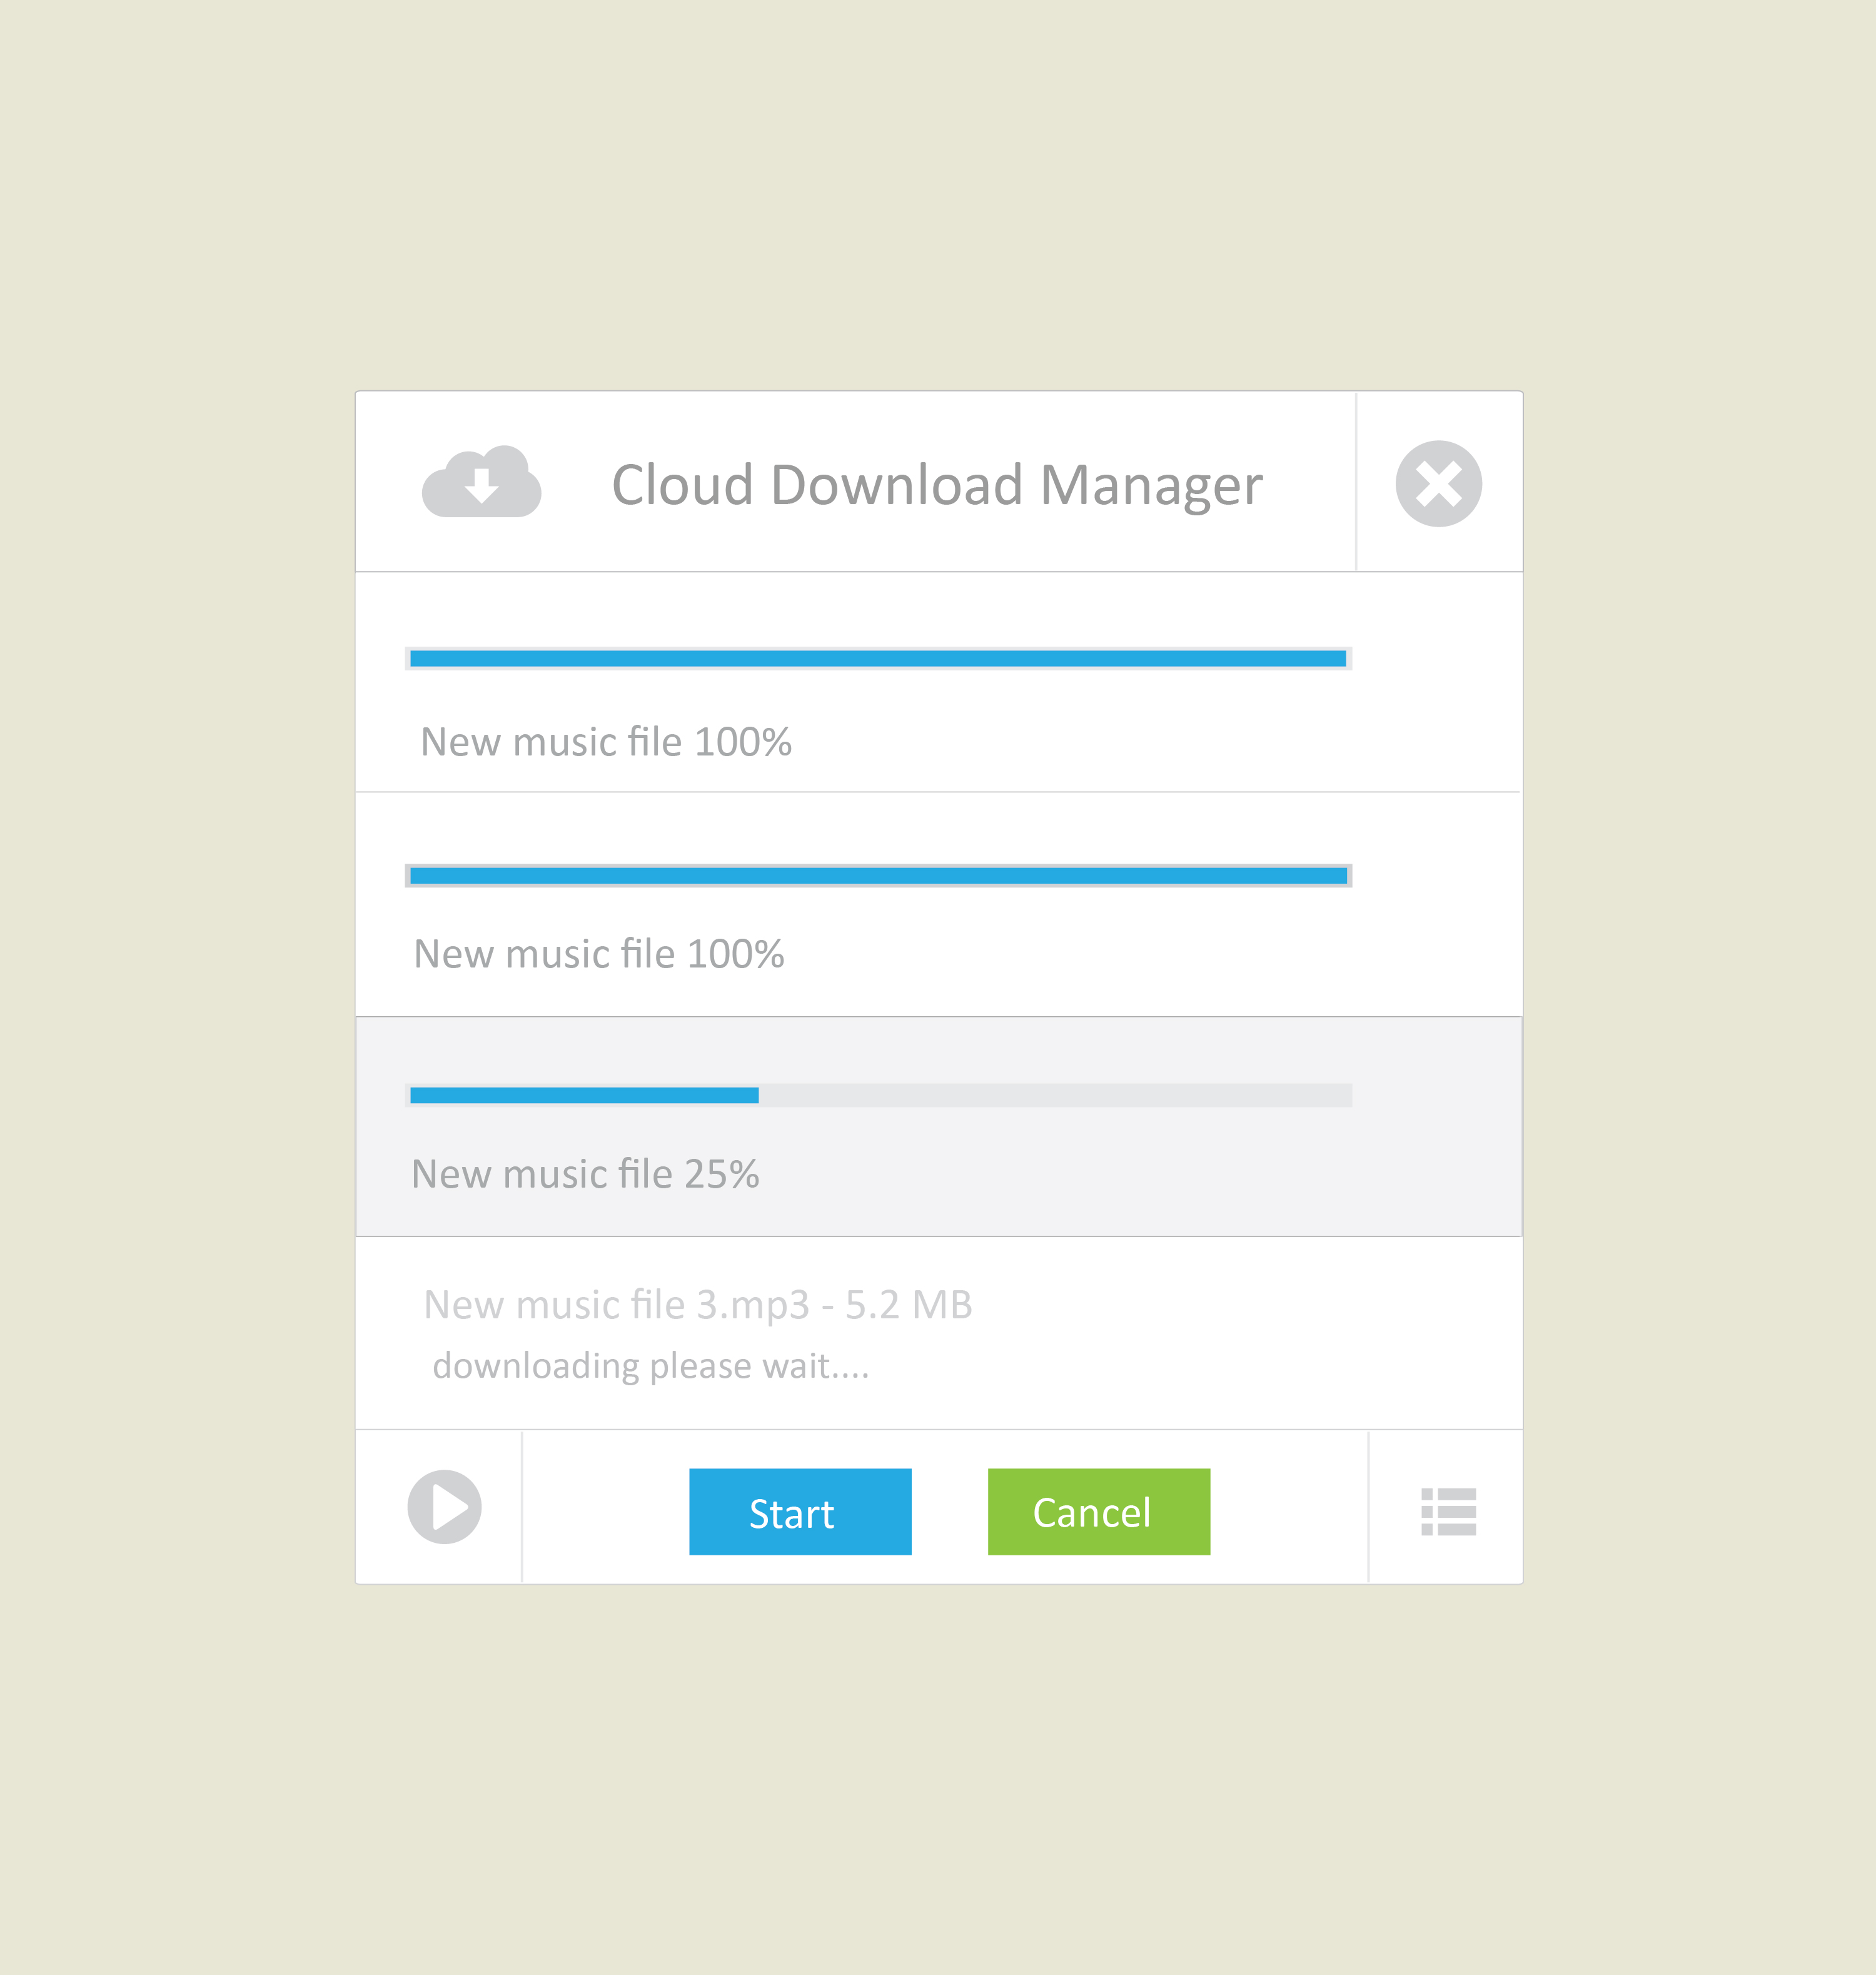 Cloud download manager